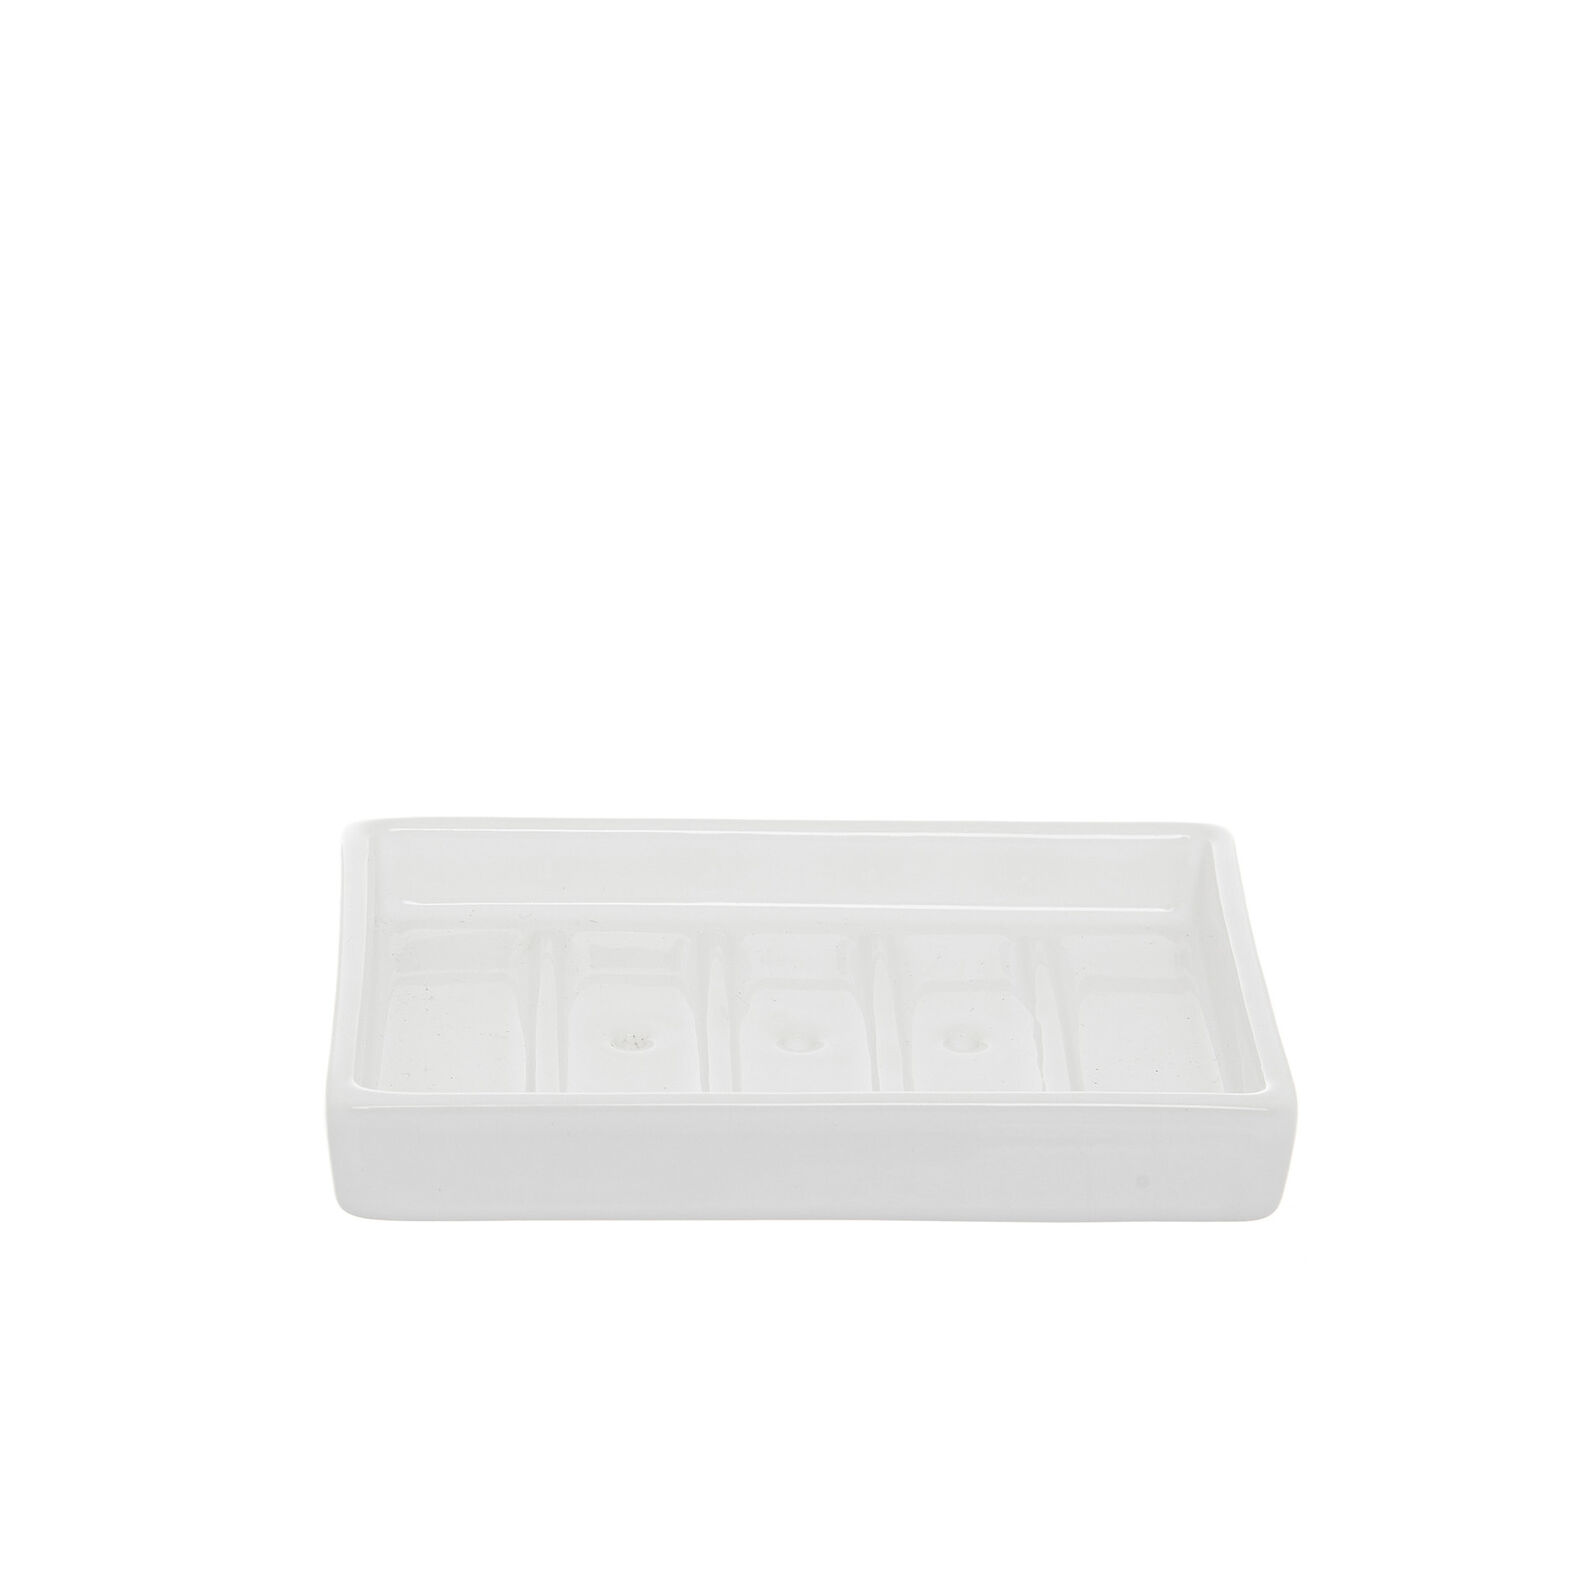 Quadra handmade ceramic soap dish